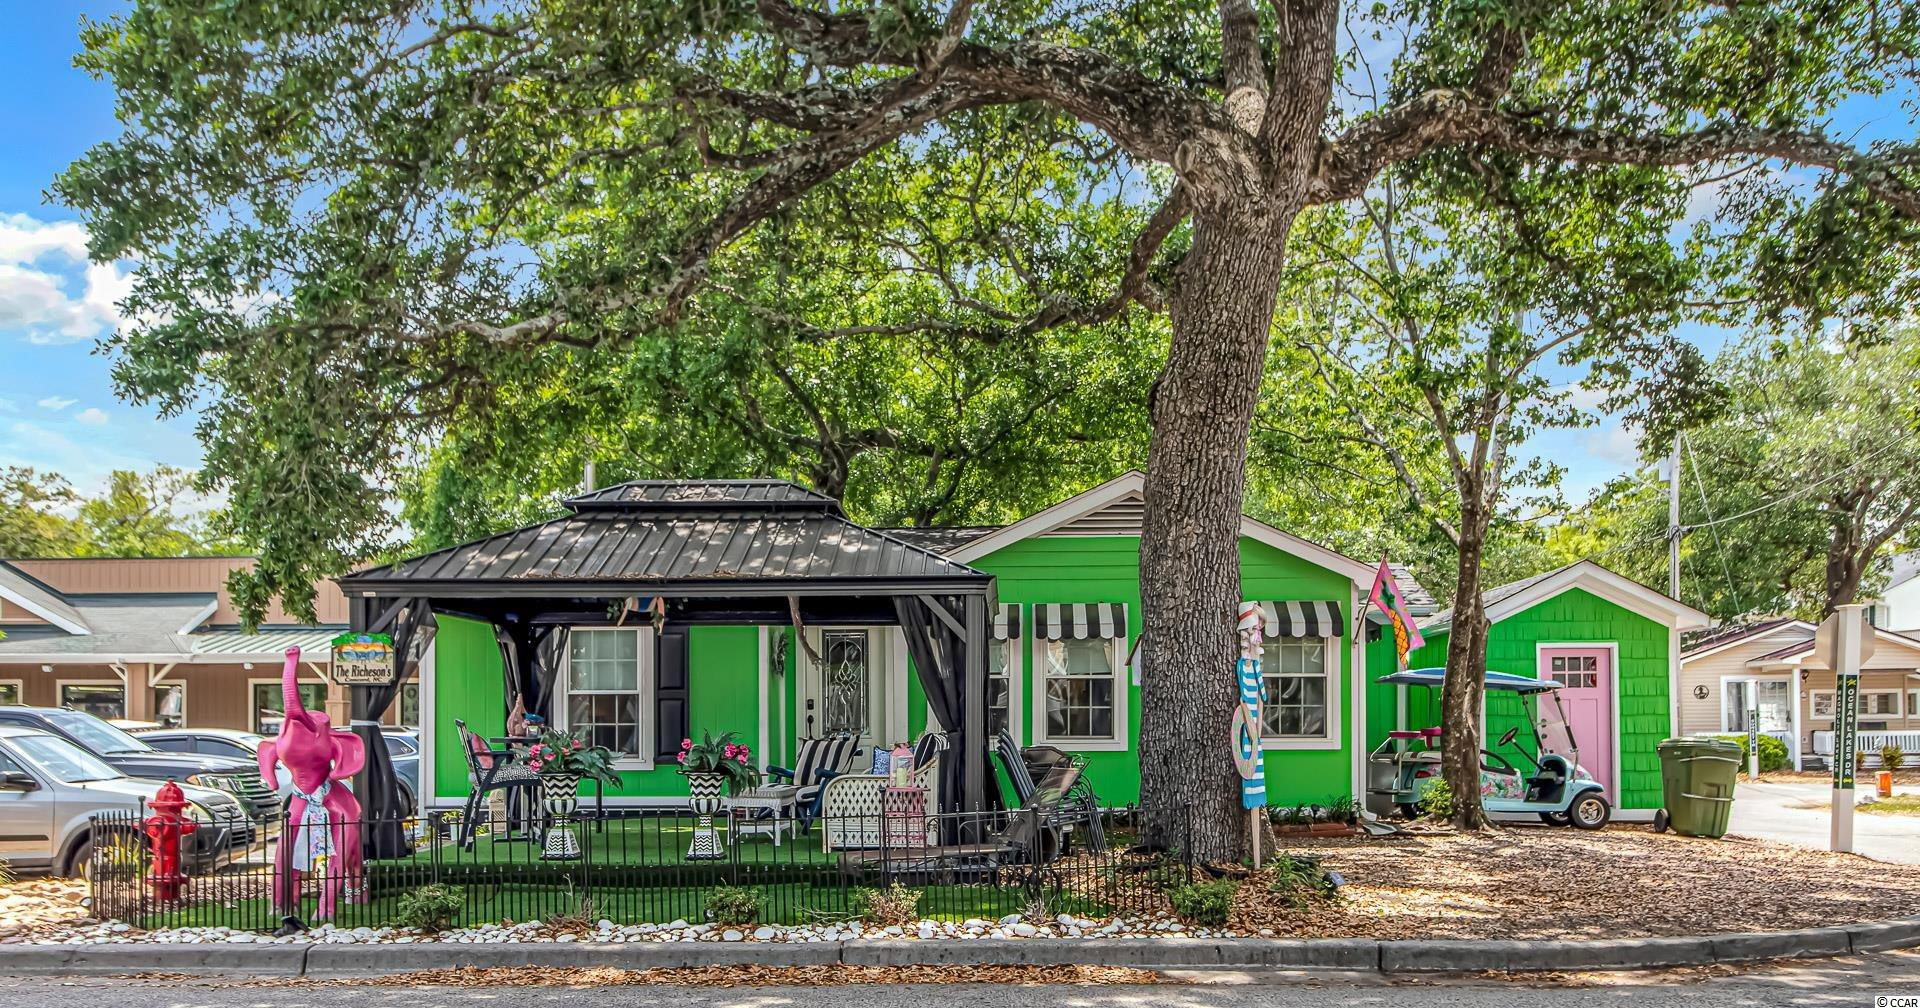 The Lily Pad:  3BR & 2BA with great outdoor Gazebo for sitting & watching the people go by.  Hop & skip to the store, Water park a stones throw, & last but not least a short stroll to the Beach.  Your time to own a Class beach home that everyone will know.